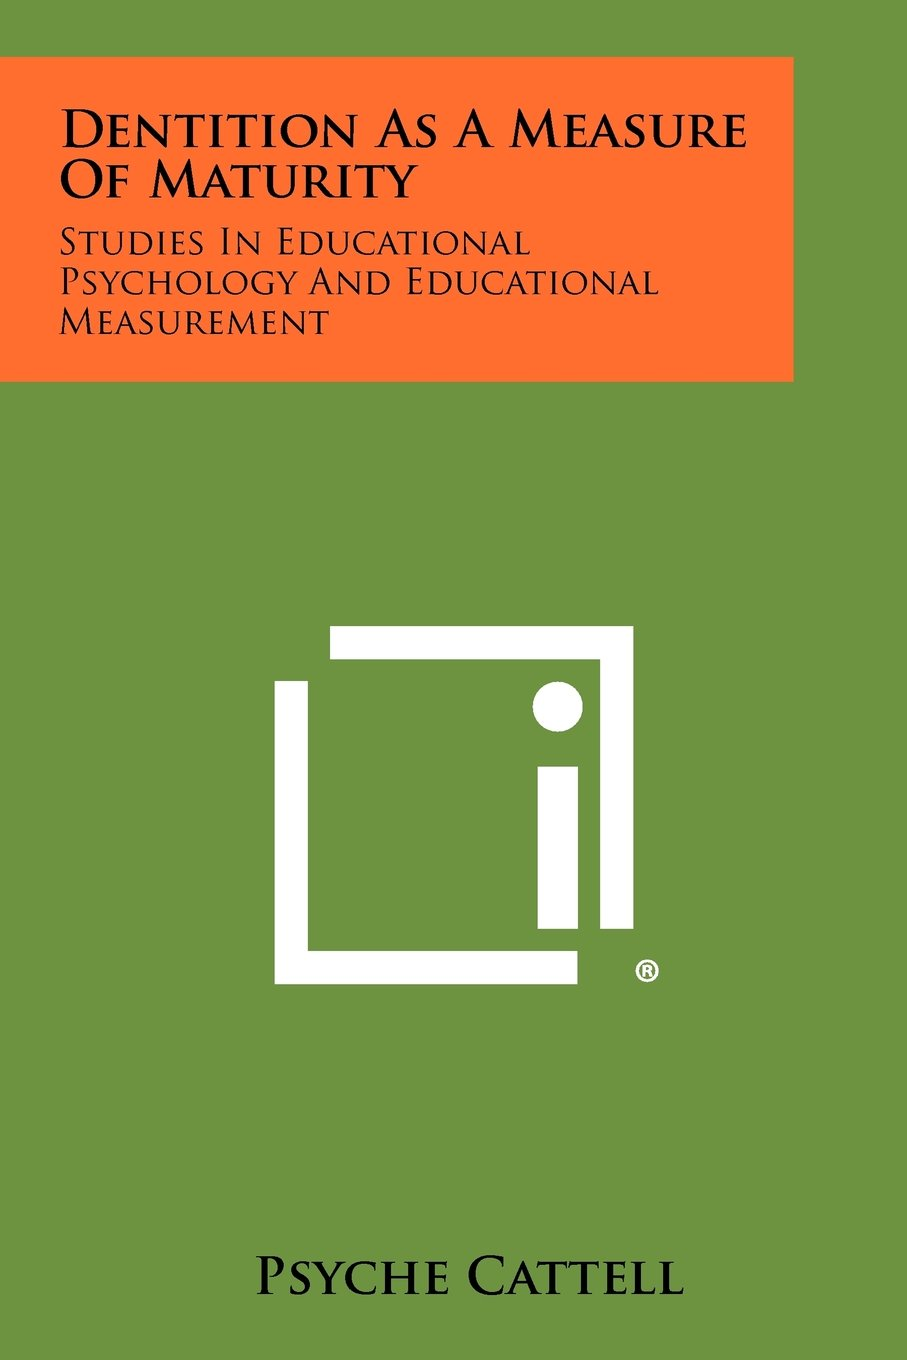 Download Dentition As A Measure Of Maturity: Studies In Educational Psychology And Educational Measurement ebook